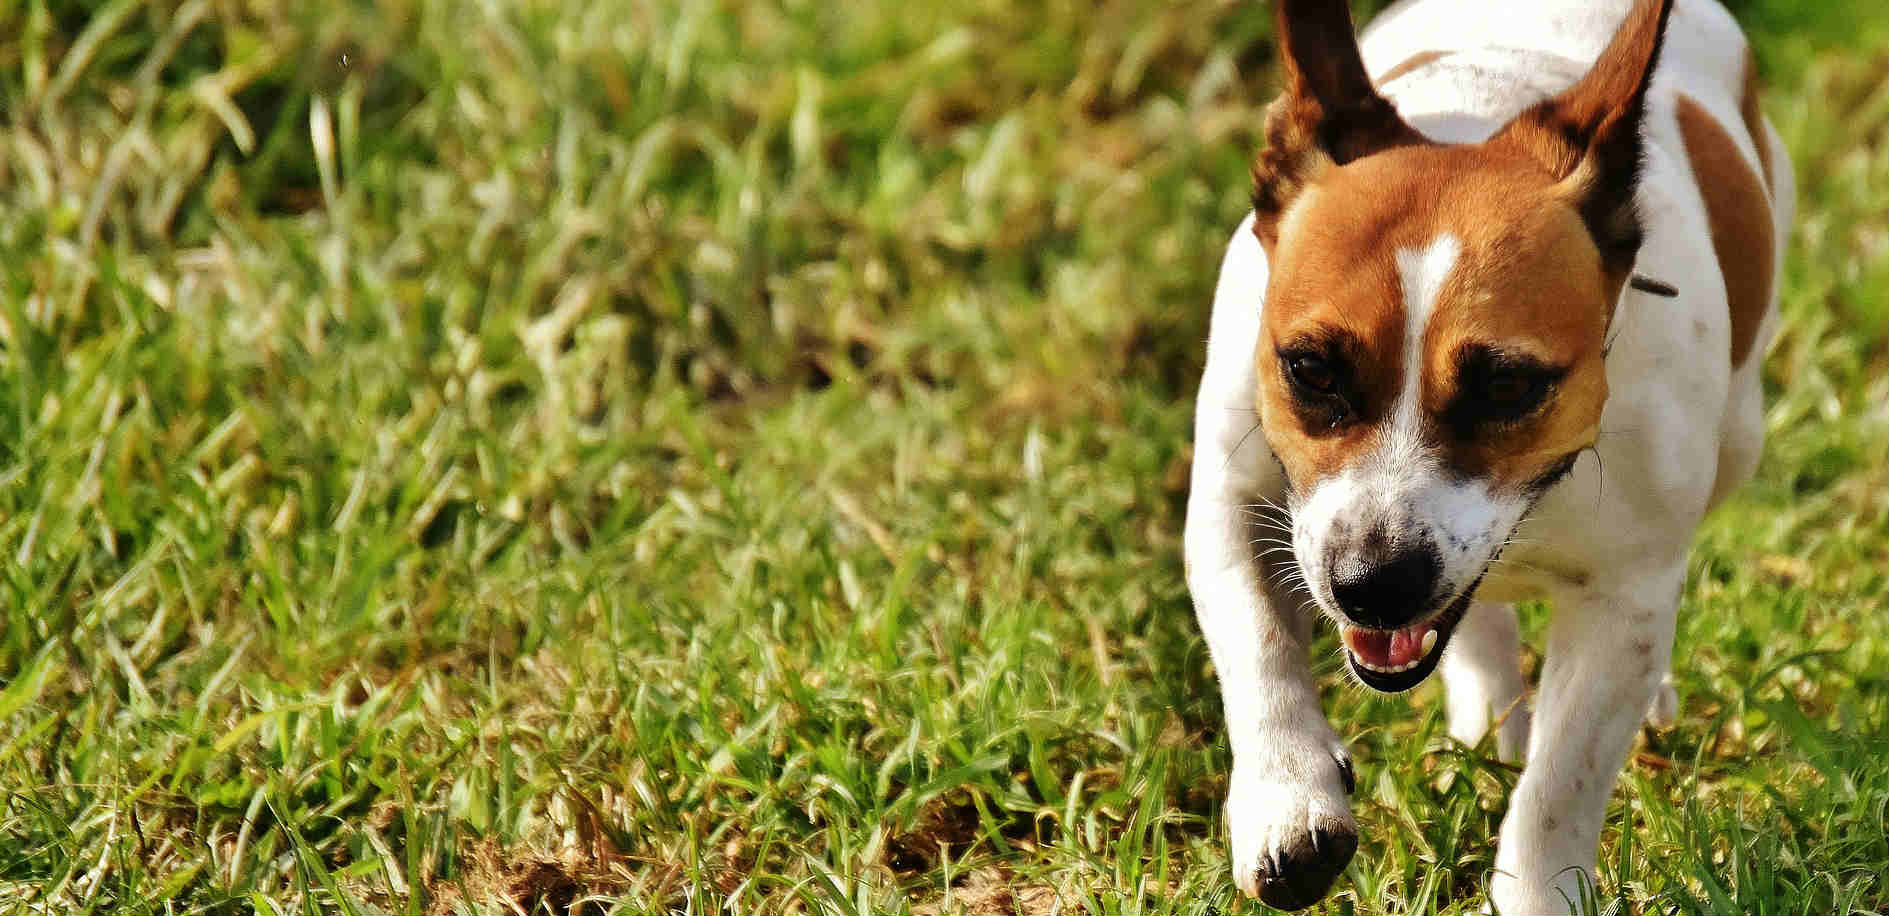 Is it safe to use cannabis or CBD oil for seizures in dogs?